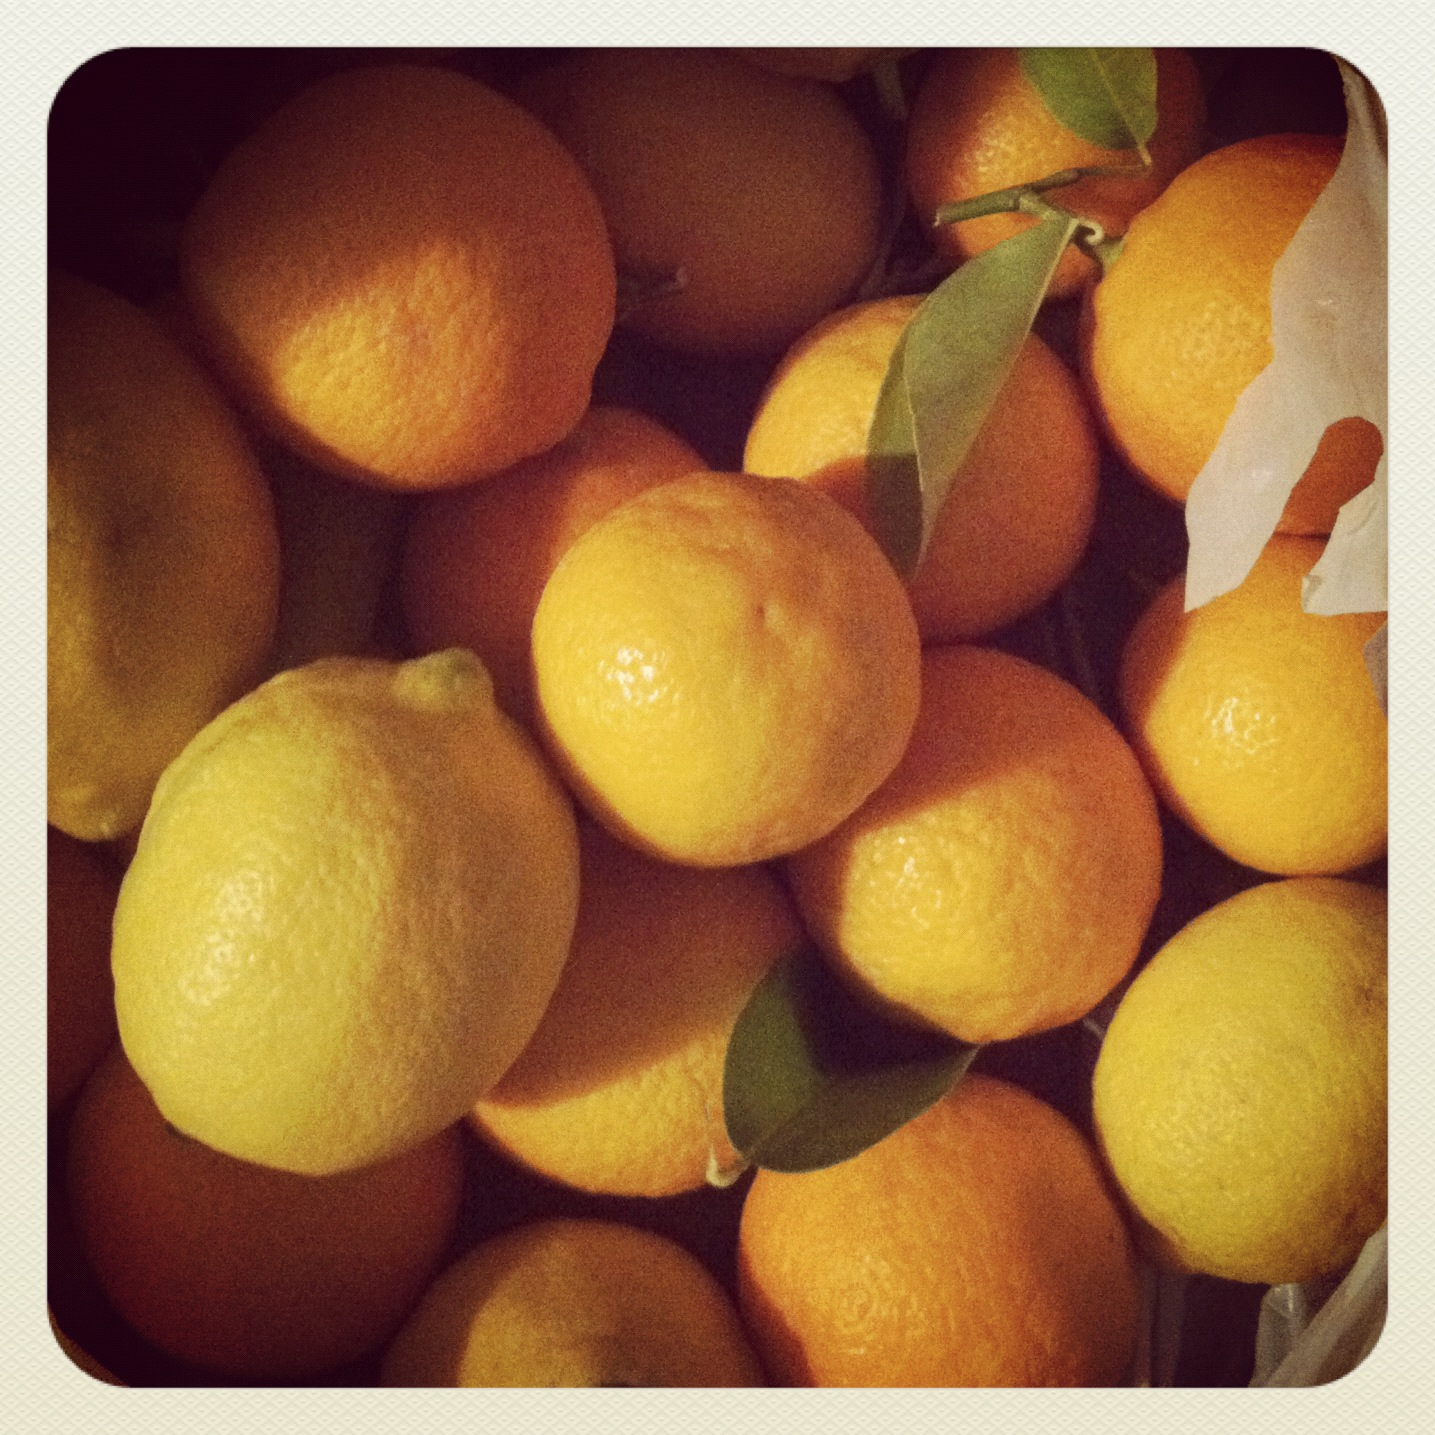 Good Golly Miss Molly: My adventures featuring Molly's Meyer lemons.